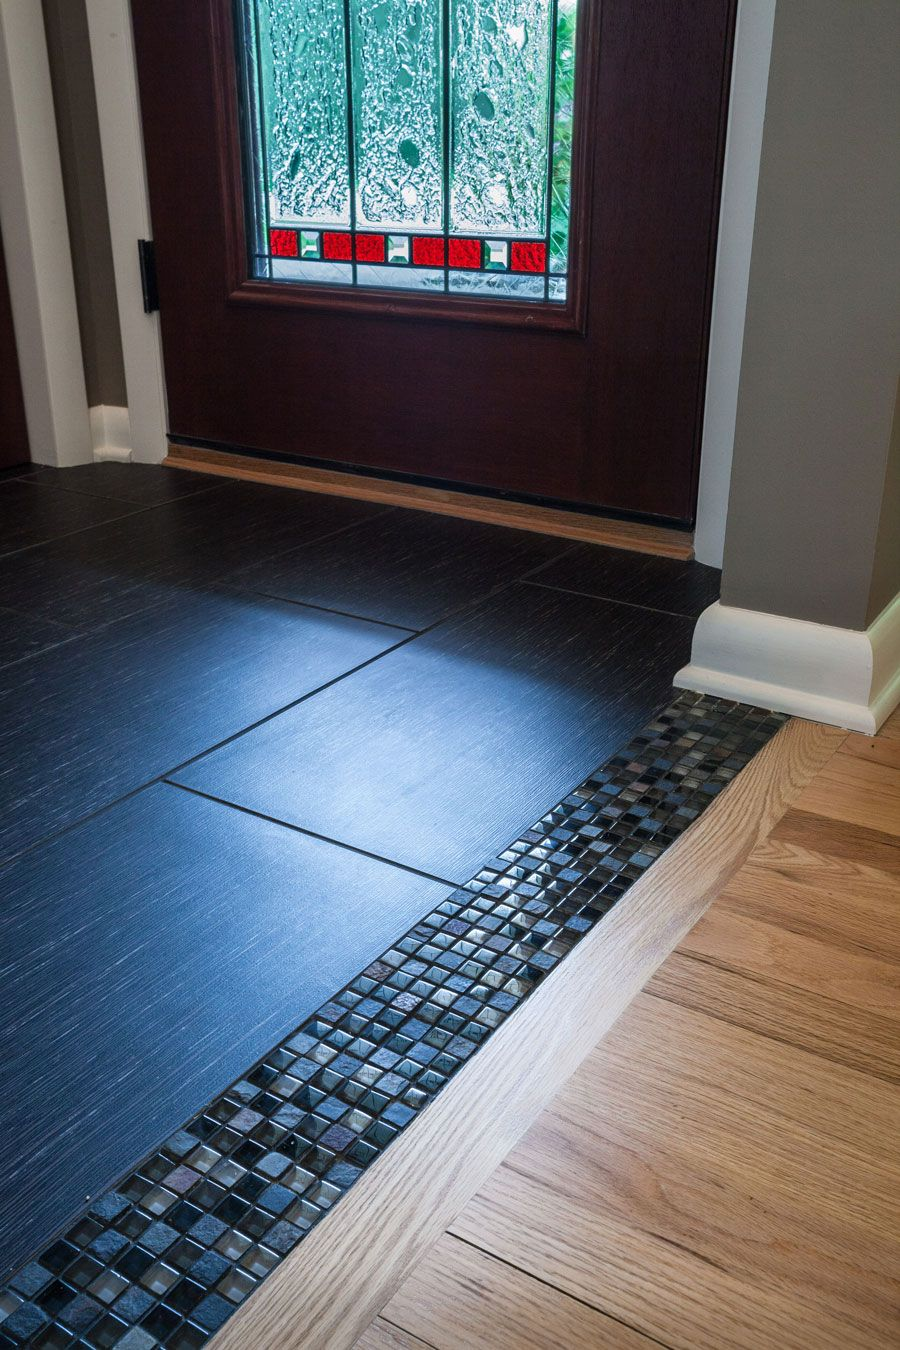 Tile Foyer And Kitchen : Brookfield midcentury modern interior remodel glass